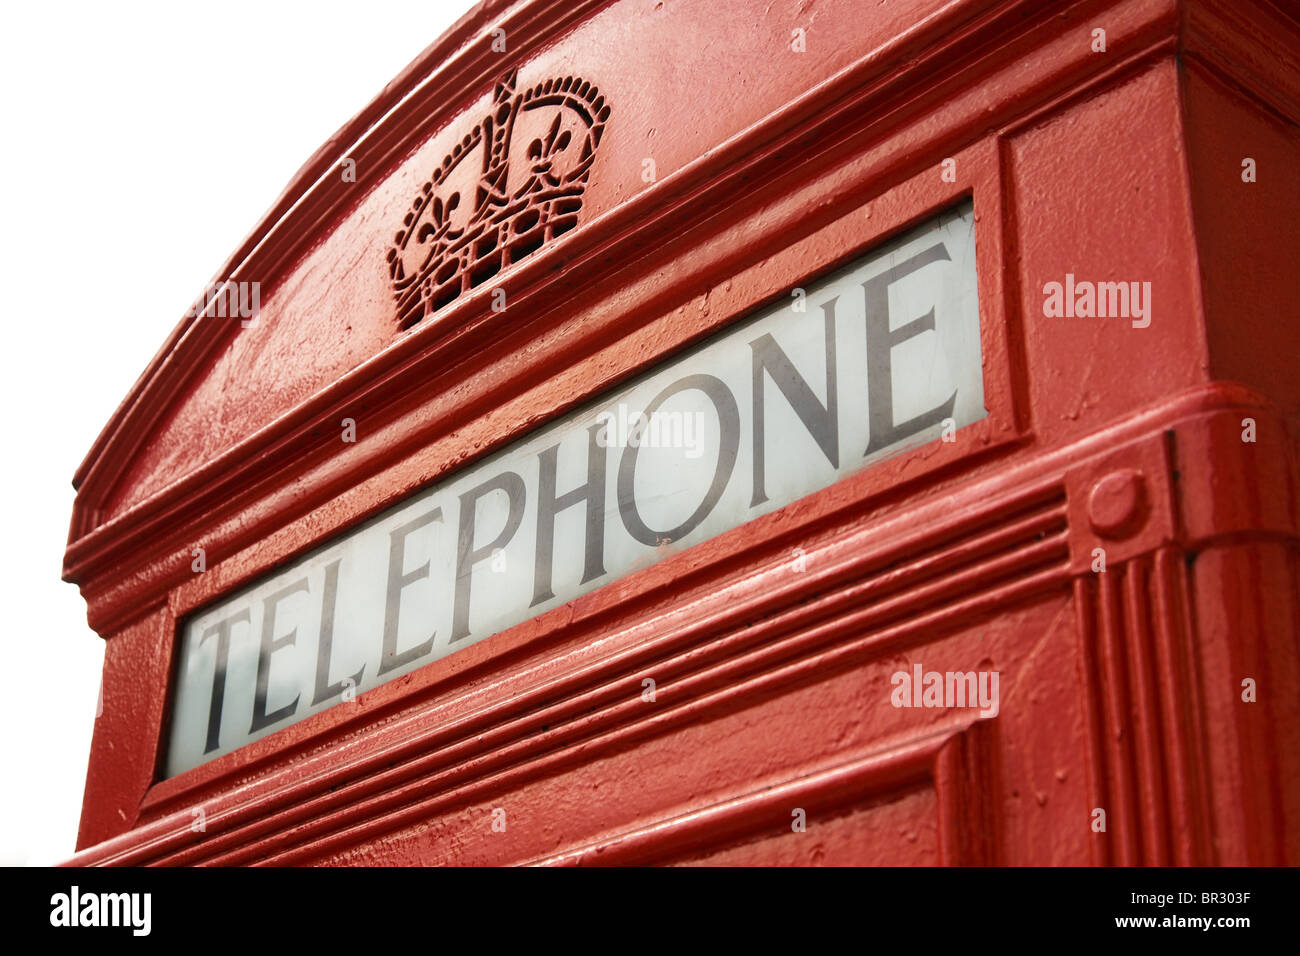 Detail of London telephone box - Stock Image